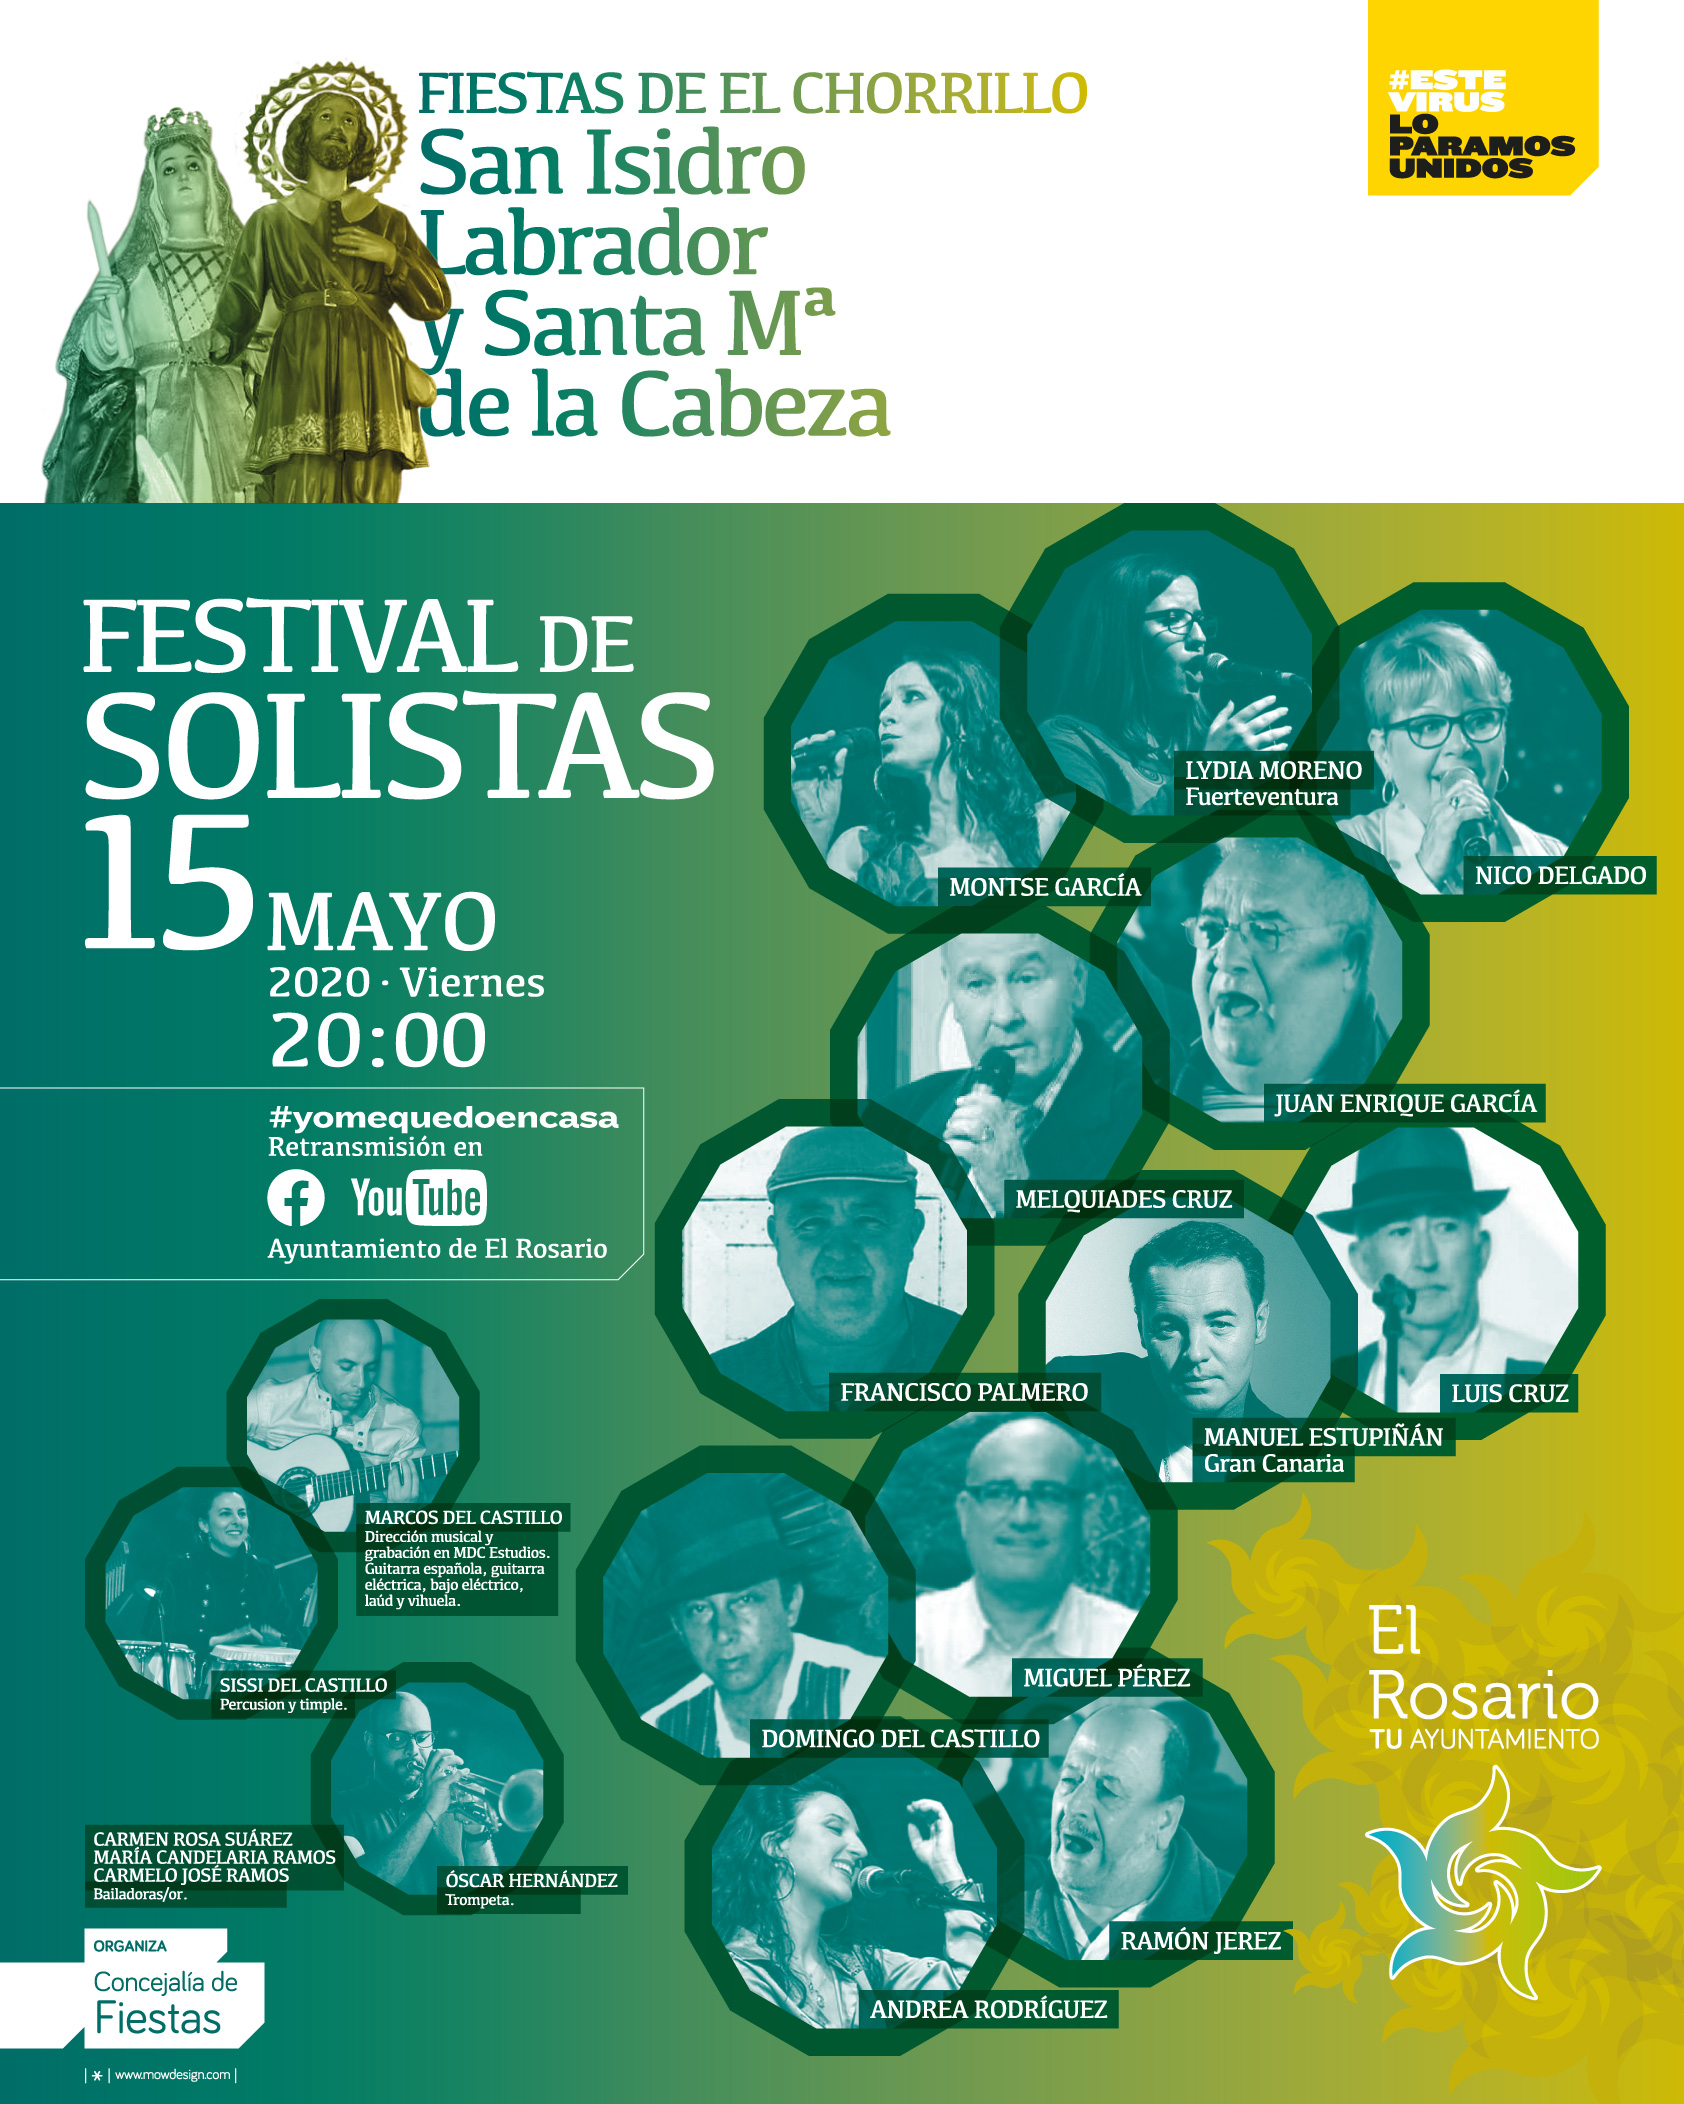 FIESTA-S_ISIDRO-S_CABEZA-20200515-CARTEL_A3-20200513-03af-redes